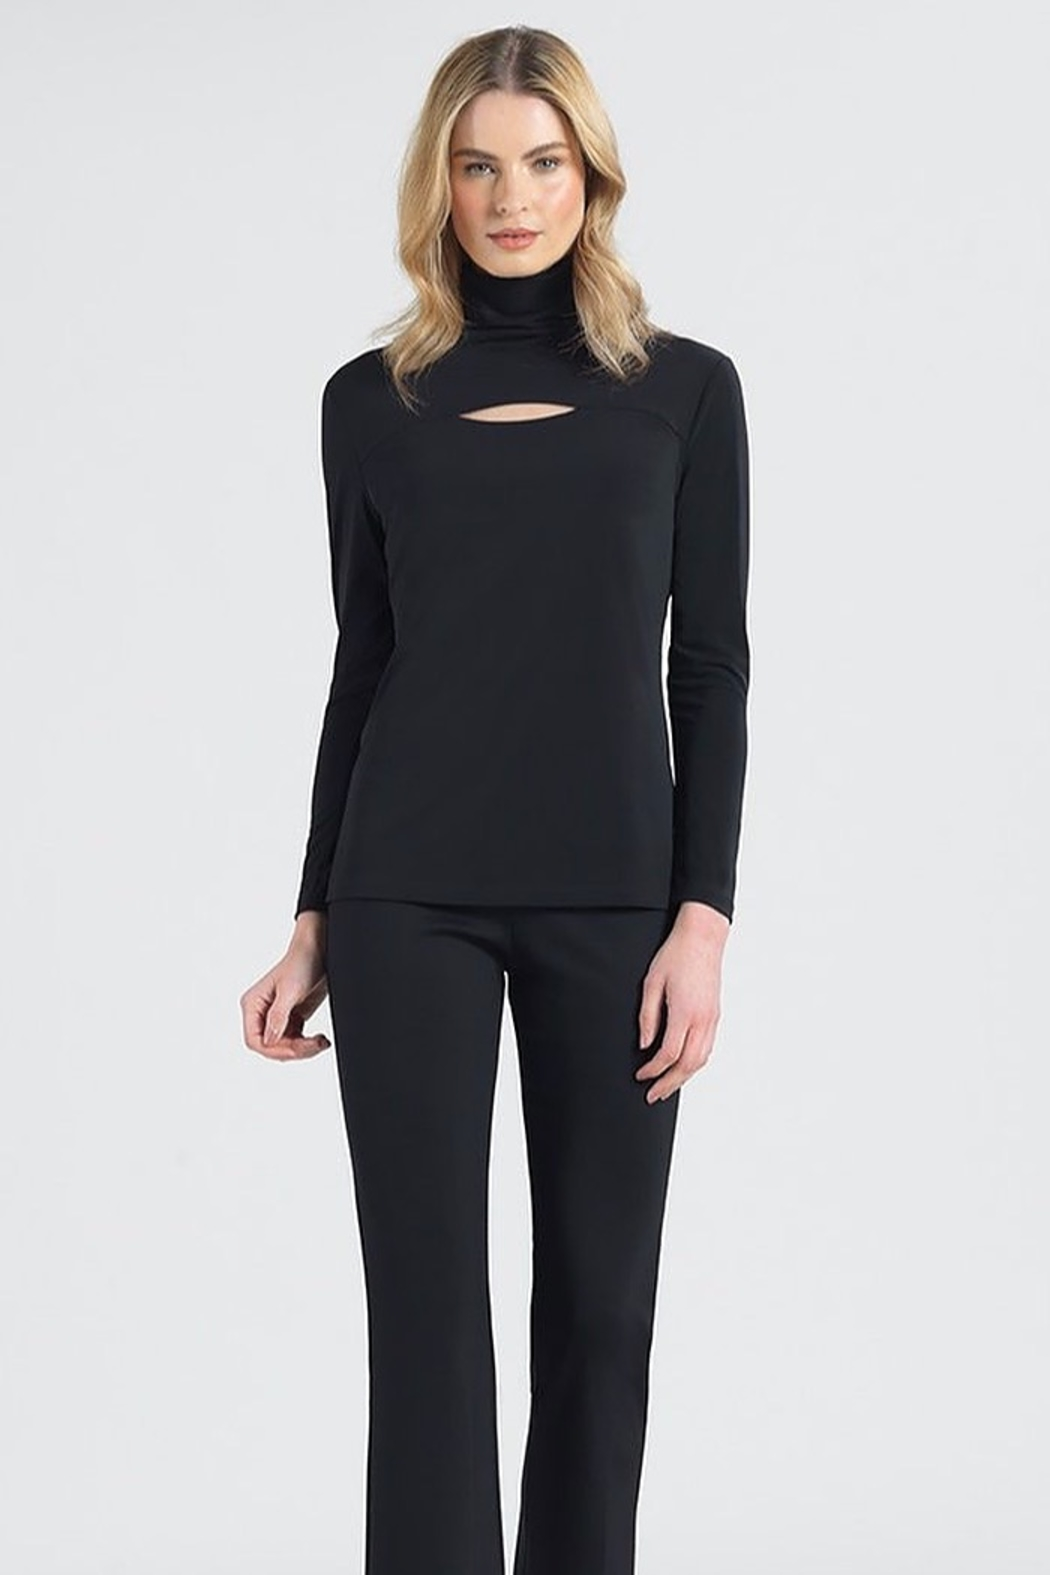 Clara Sunwoo Mock Neck Cut Out Top - Main Image